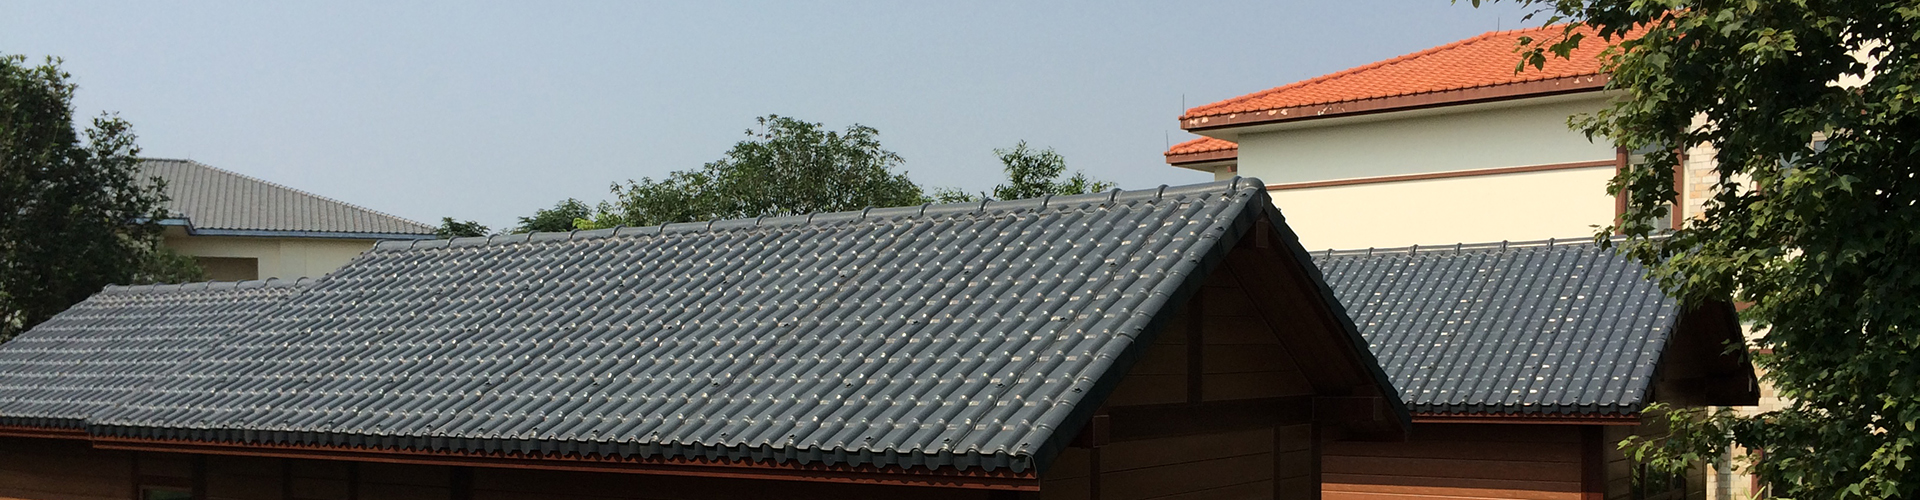 Find Chinese Roof Tiles Suppliers, High-quality Info Center-Gongli